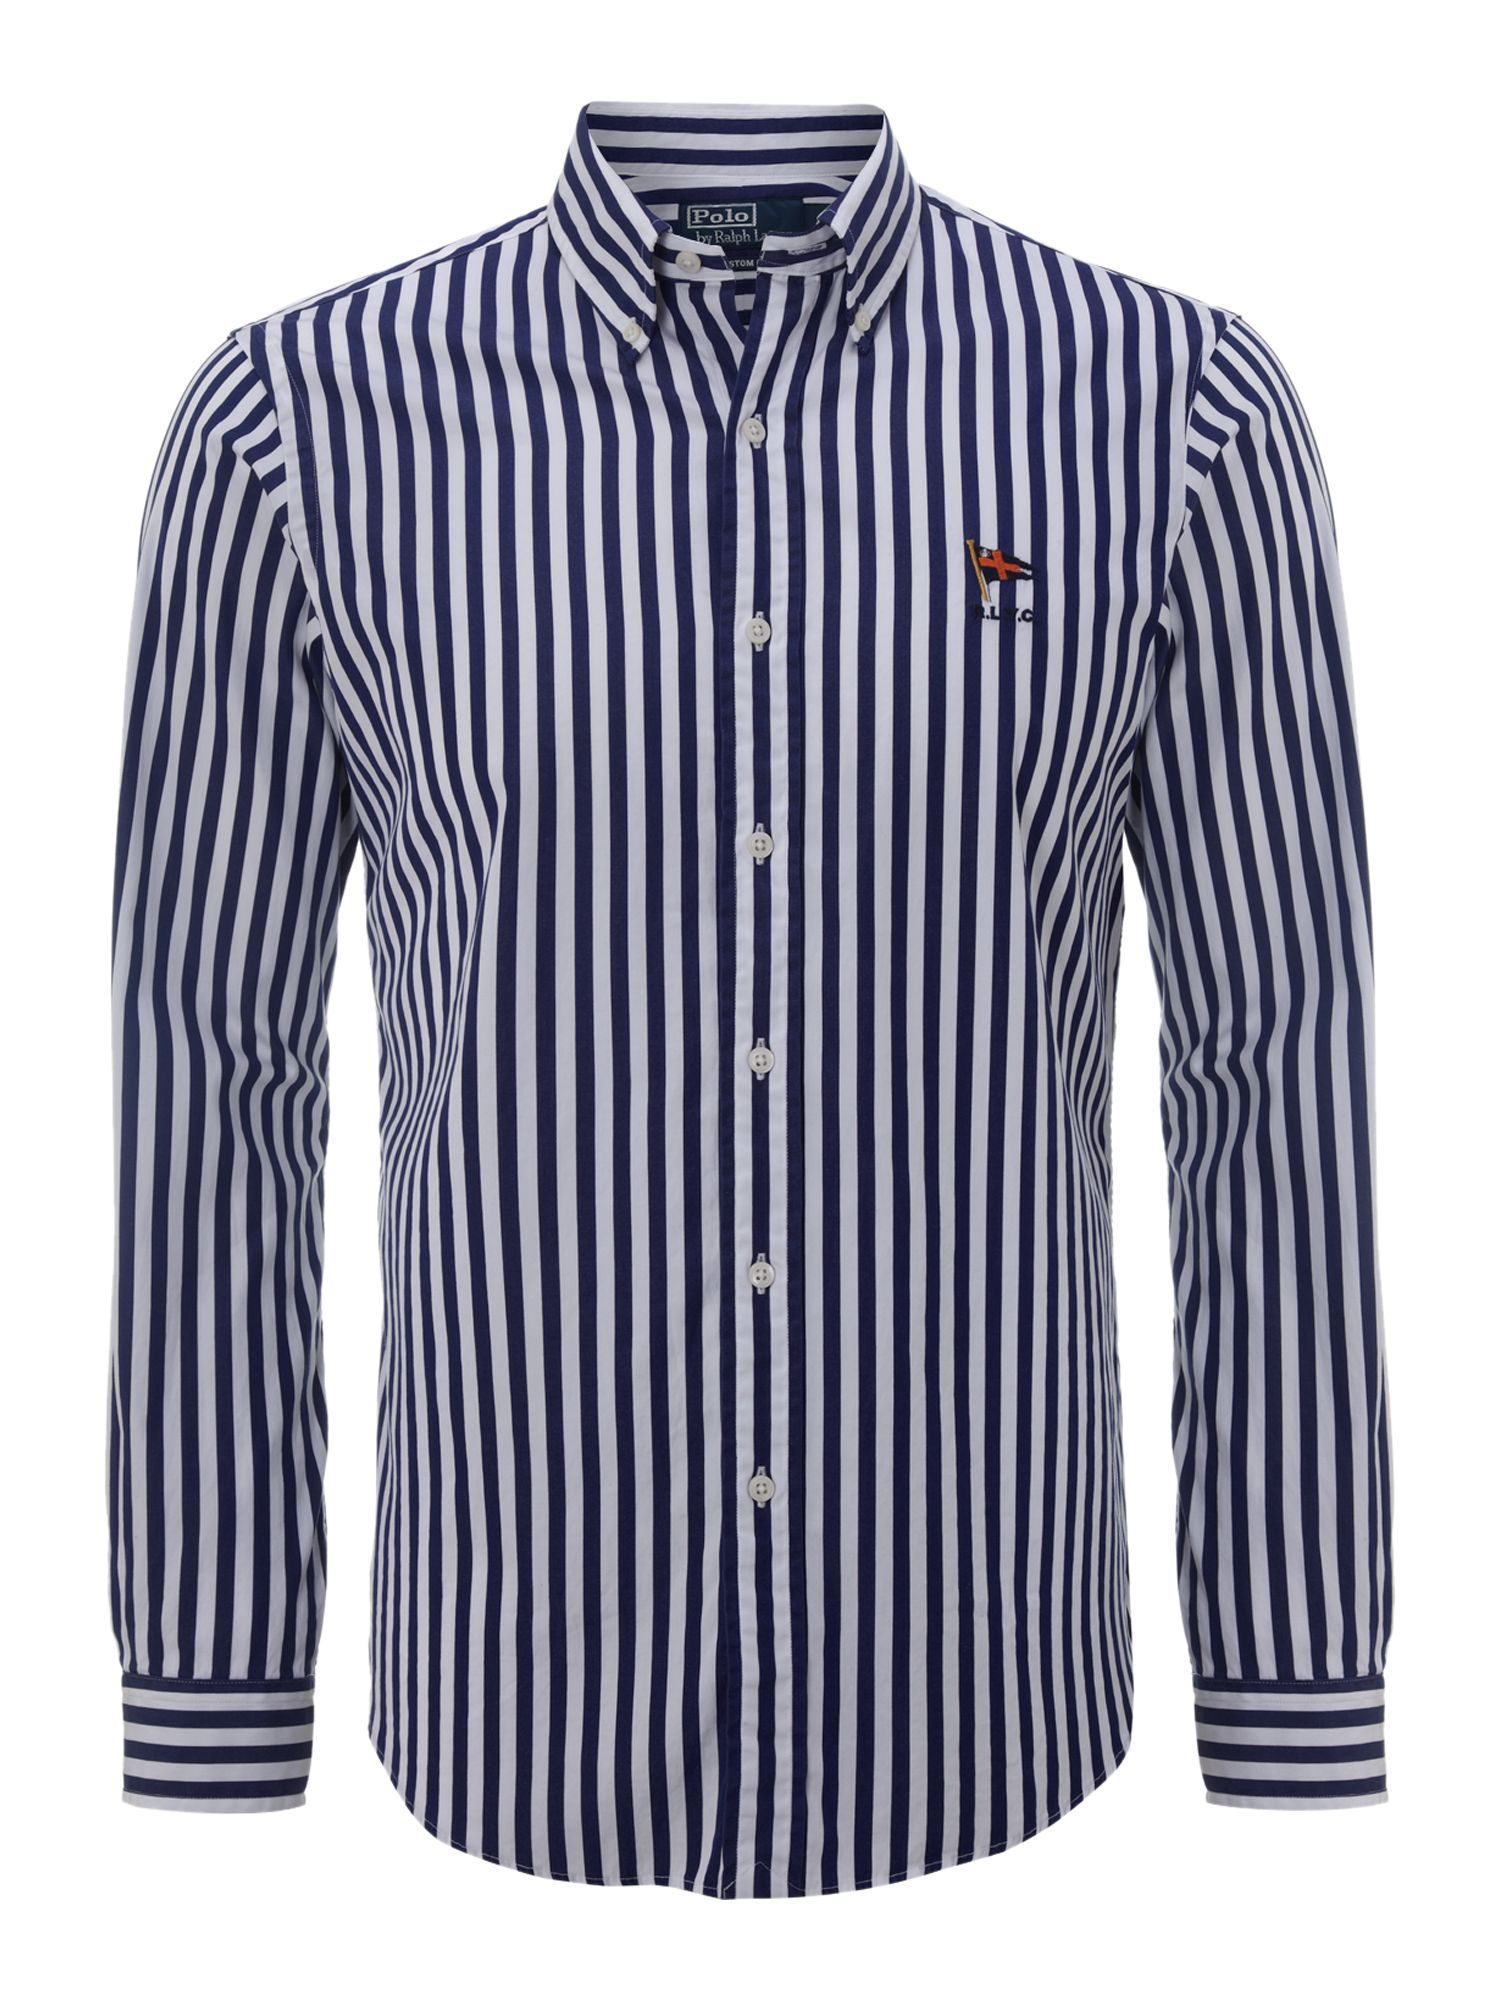 Classic long sleeved striped shirt